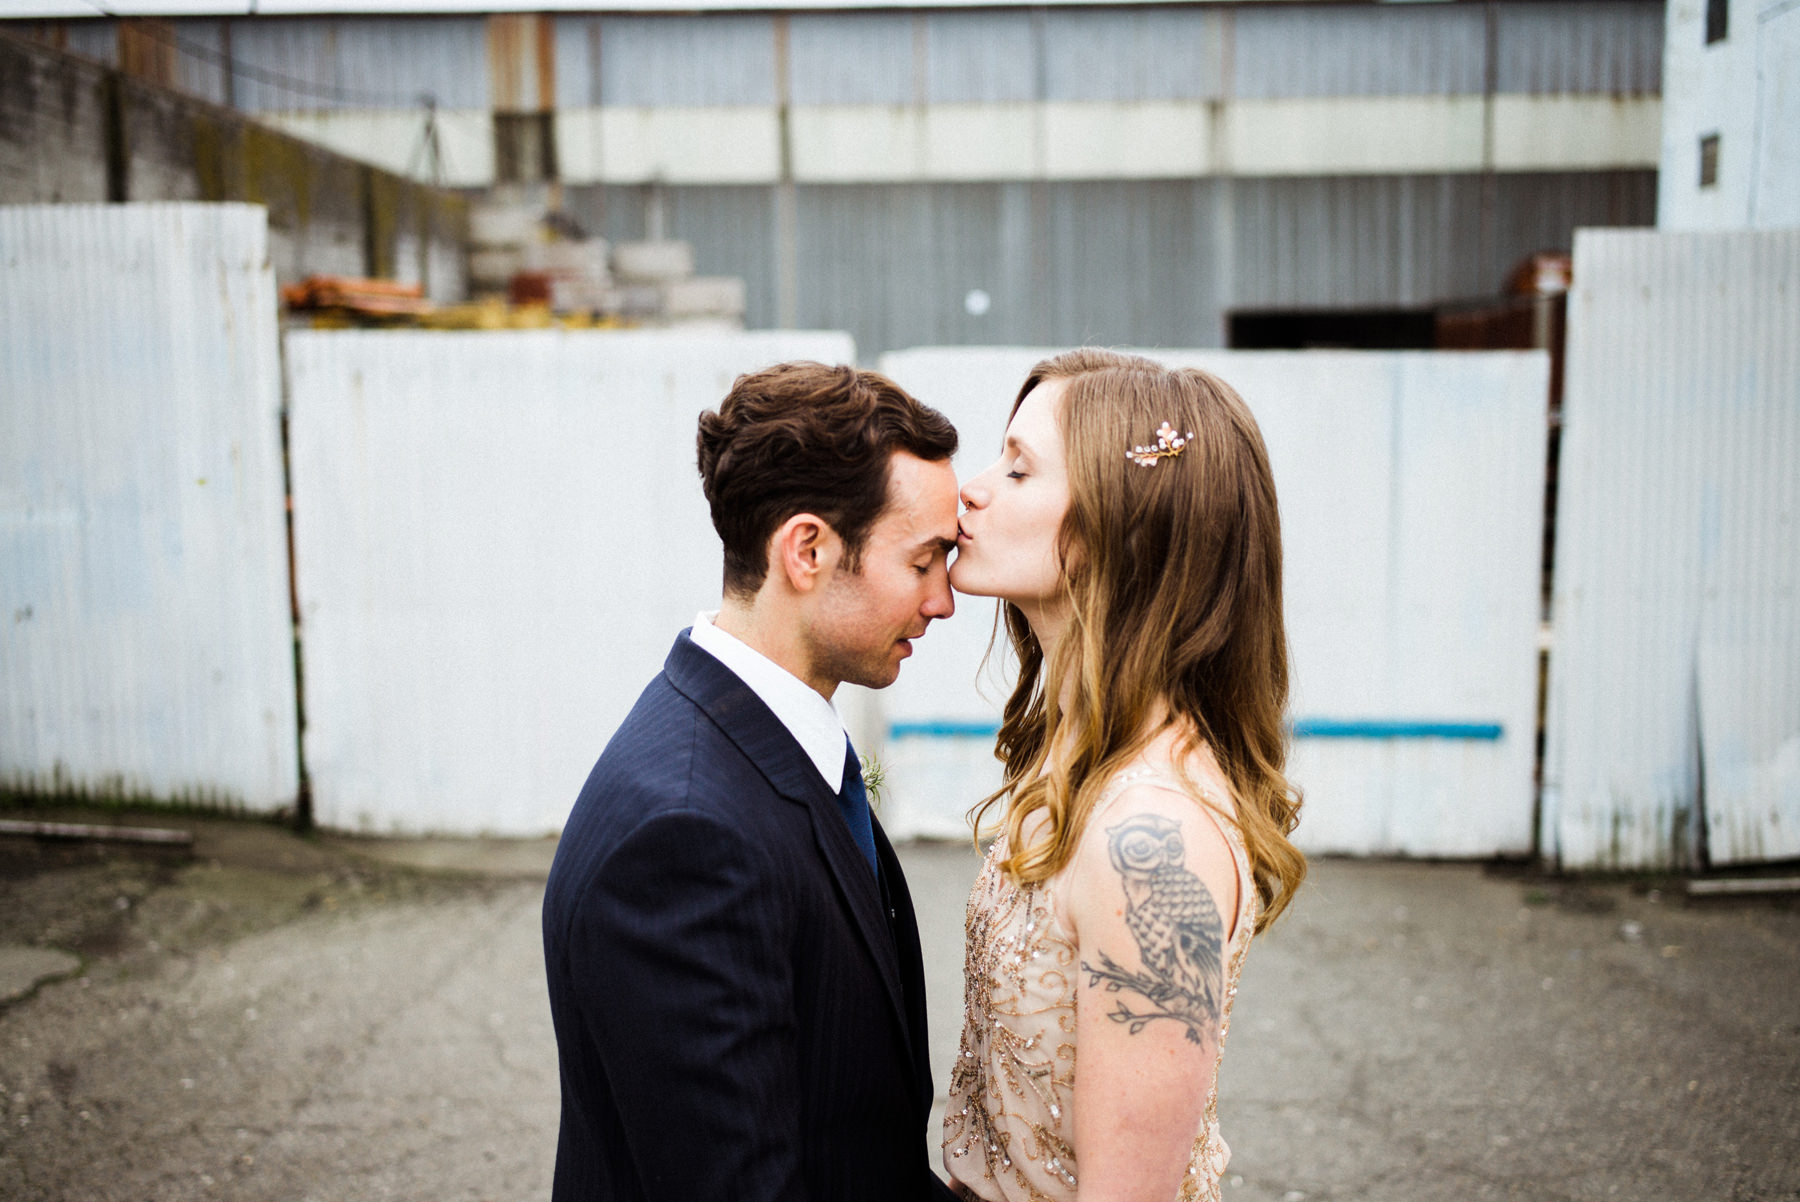 052-urban-wedding-portraits-by-film-photographer-ryan-flynn-in-industrial-area.jpg